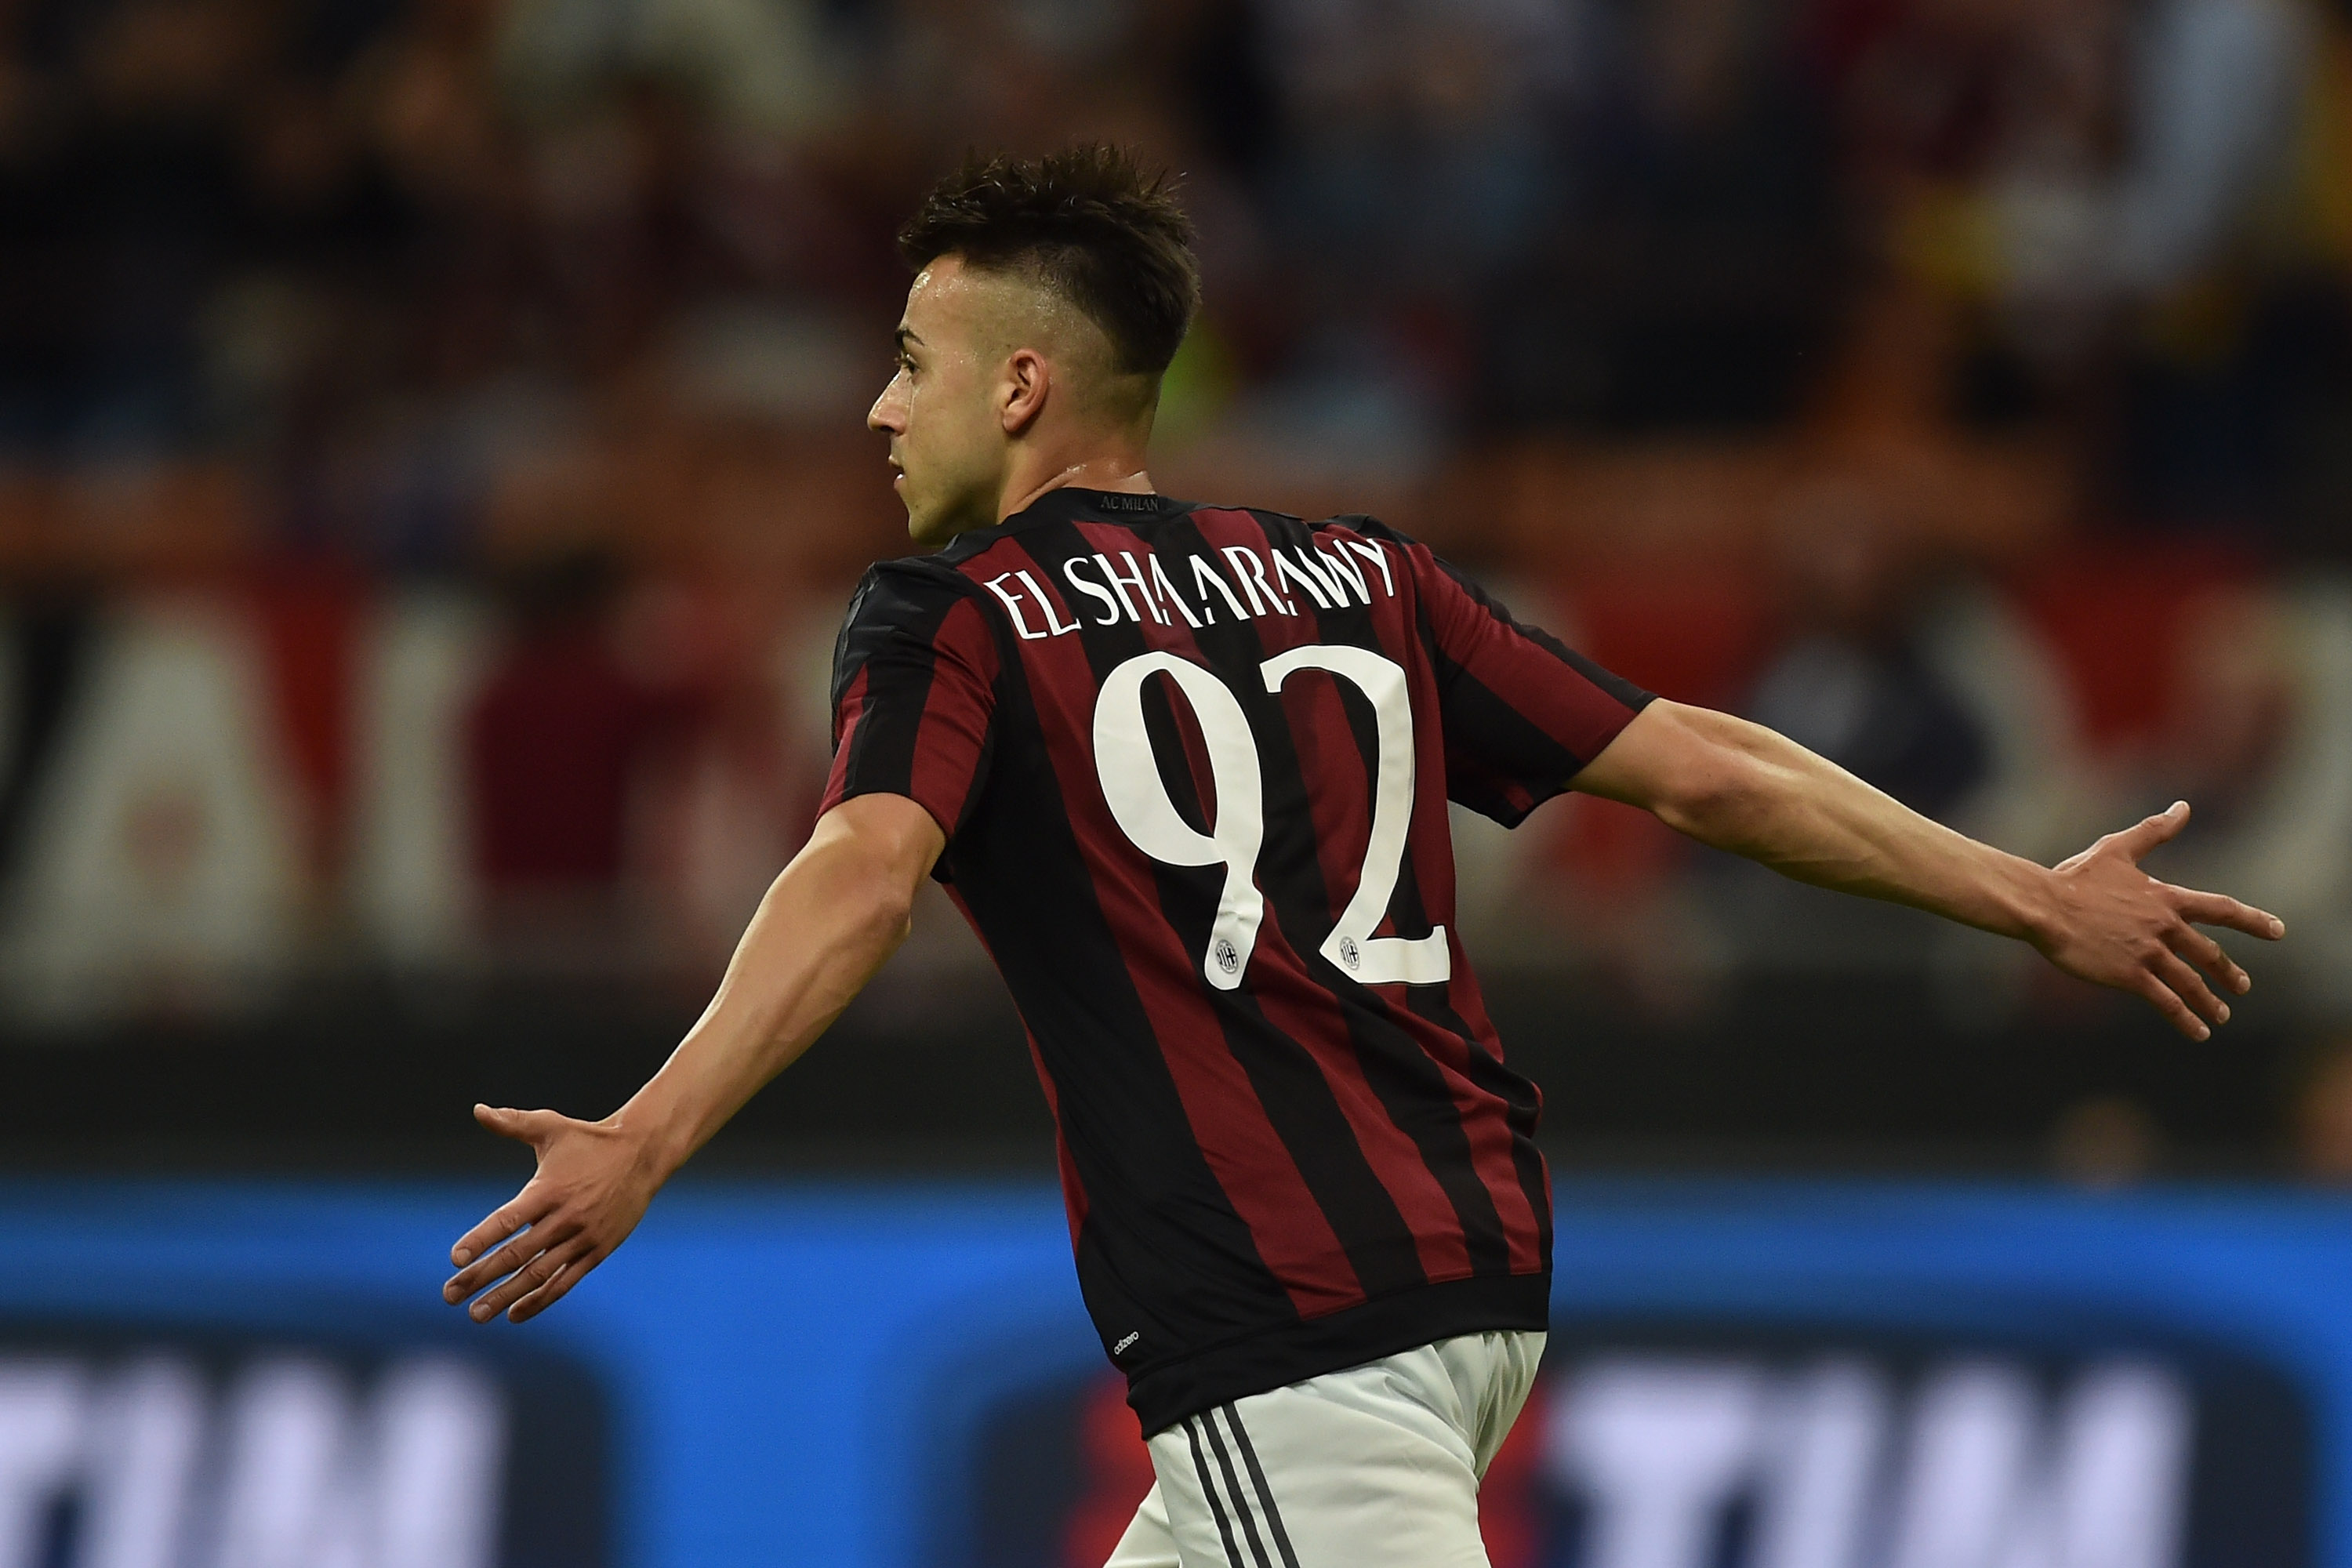 MILAN, ITALY - MAY 24: Stephan El Shaarawy of AC Milan celebrates the opening goal during the Serie A match between AC Milan and Torino FC at Stadio Giuseppe Meazza on May 24, 2015 in Milan, Italy. (Photo by Valerio Pennicino/Getty Images)